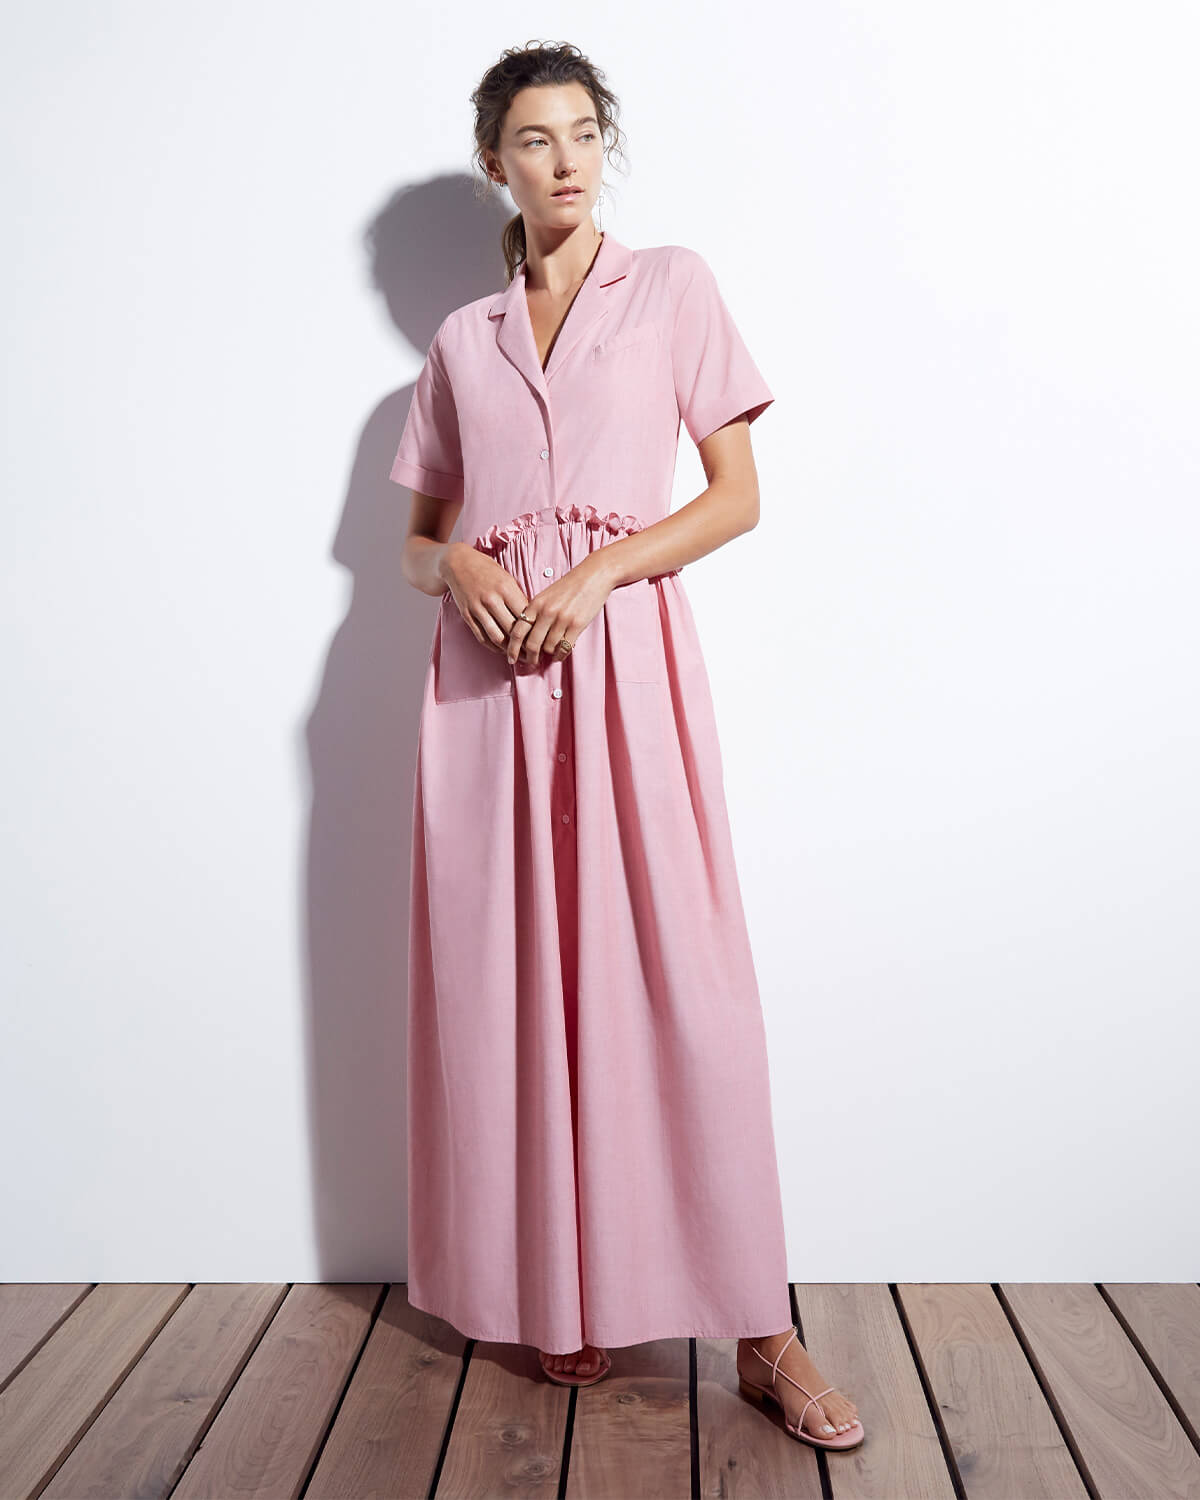 goop x Rosie Assoulin Gathered Maxidress